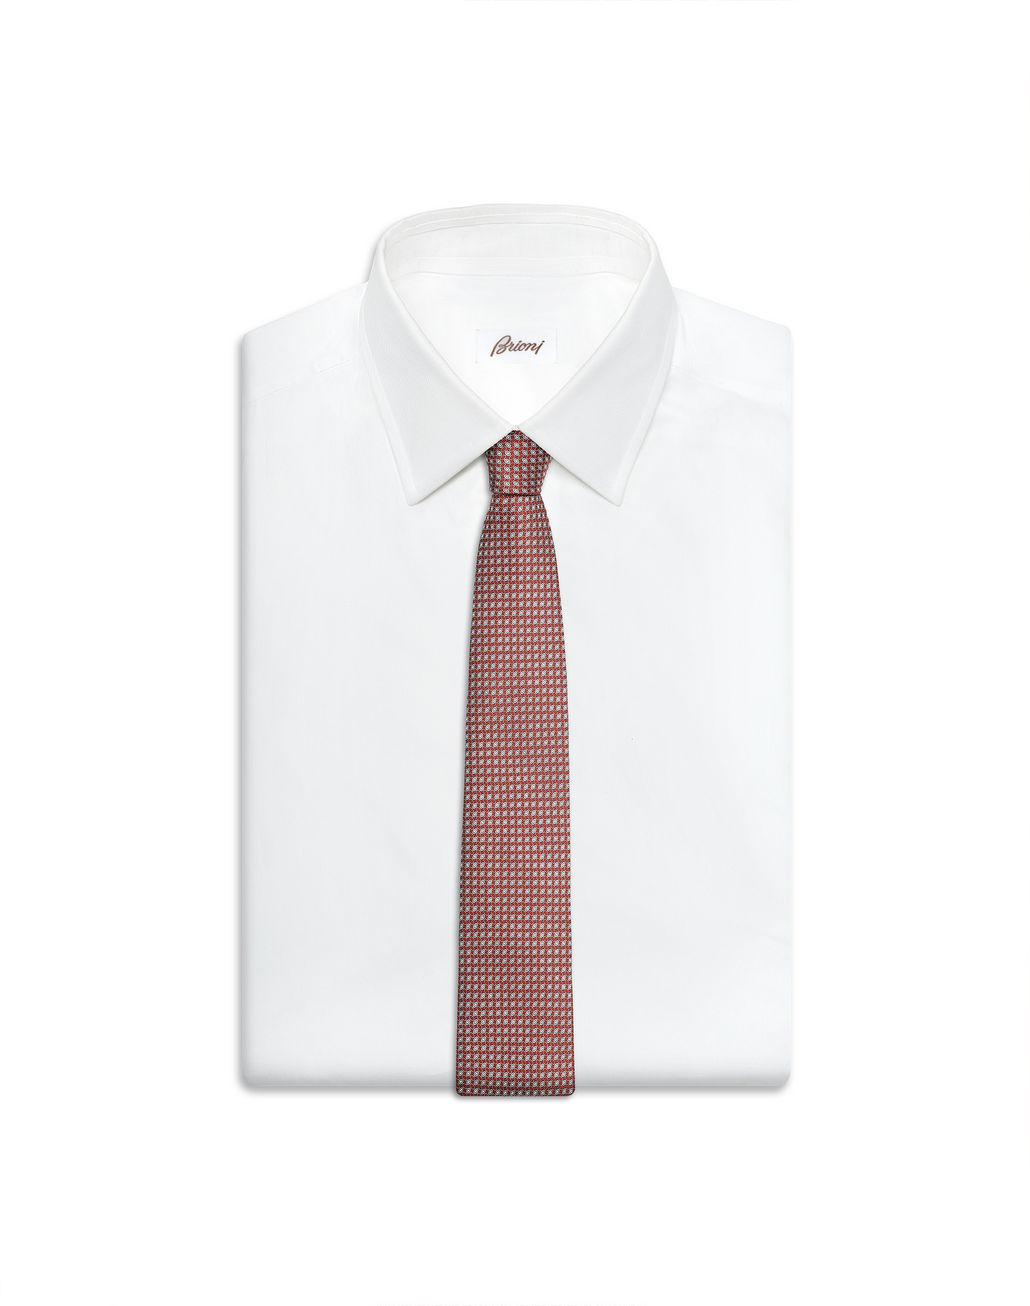 BRIONI Cravate bordeaux à motif minuscule Cravate Homme e